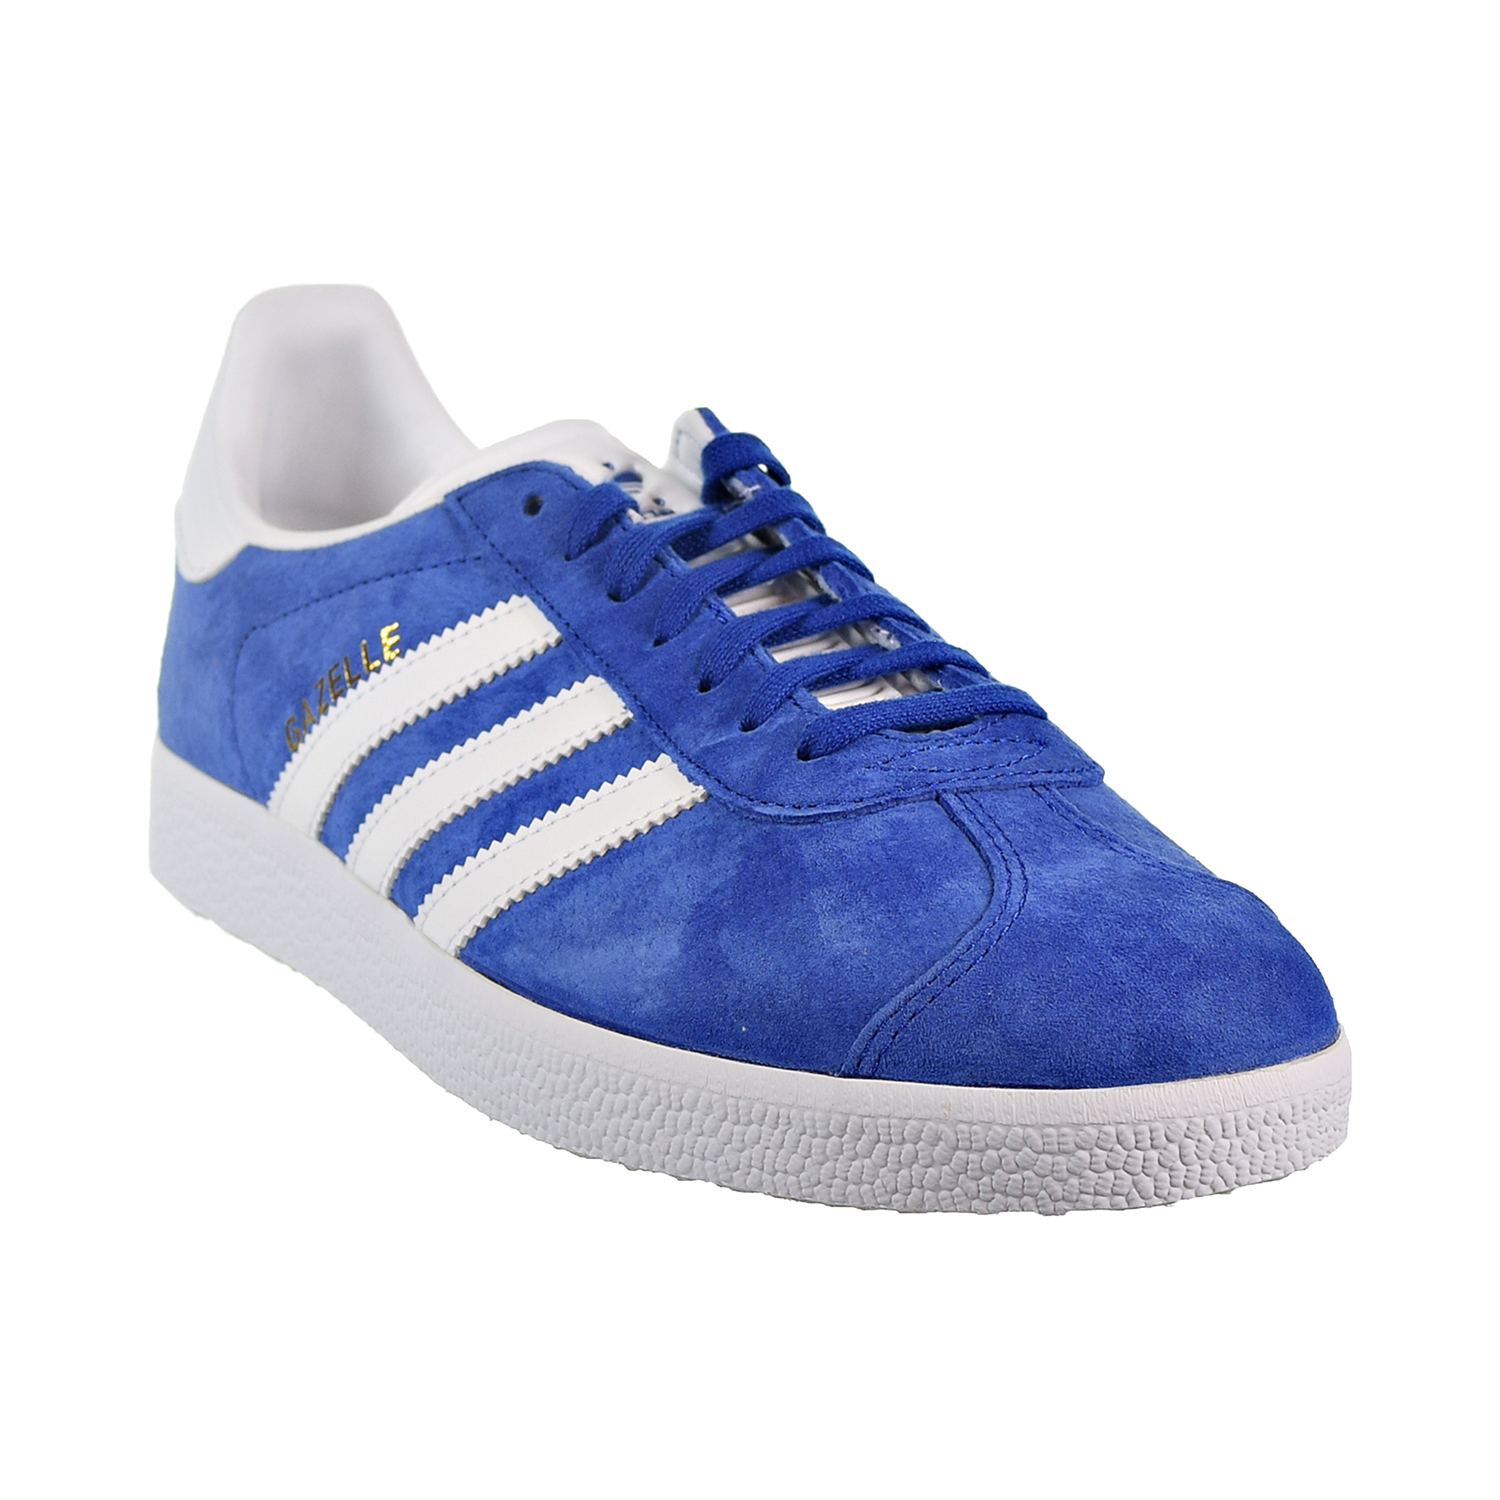 online store 71a25 ee737 Adidas Gazelle Men s Shoes Collegiate Royal White Gold Metallic s76227